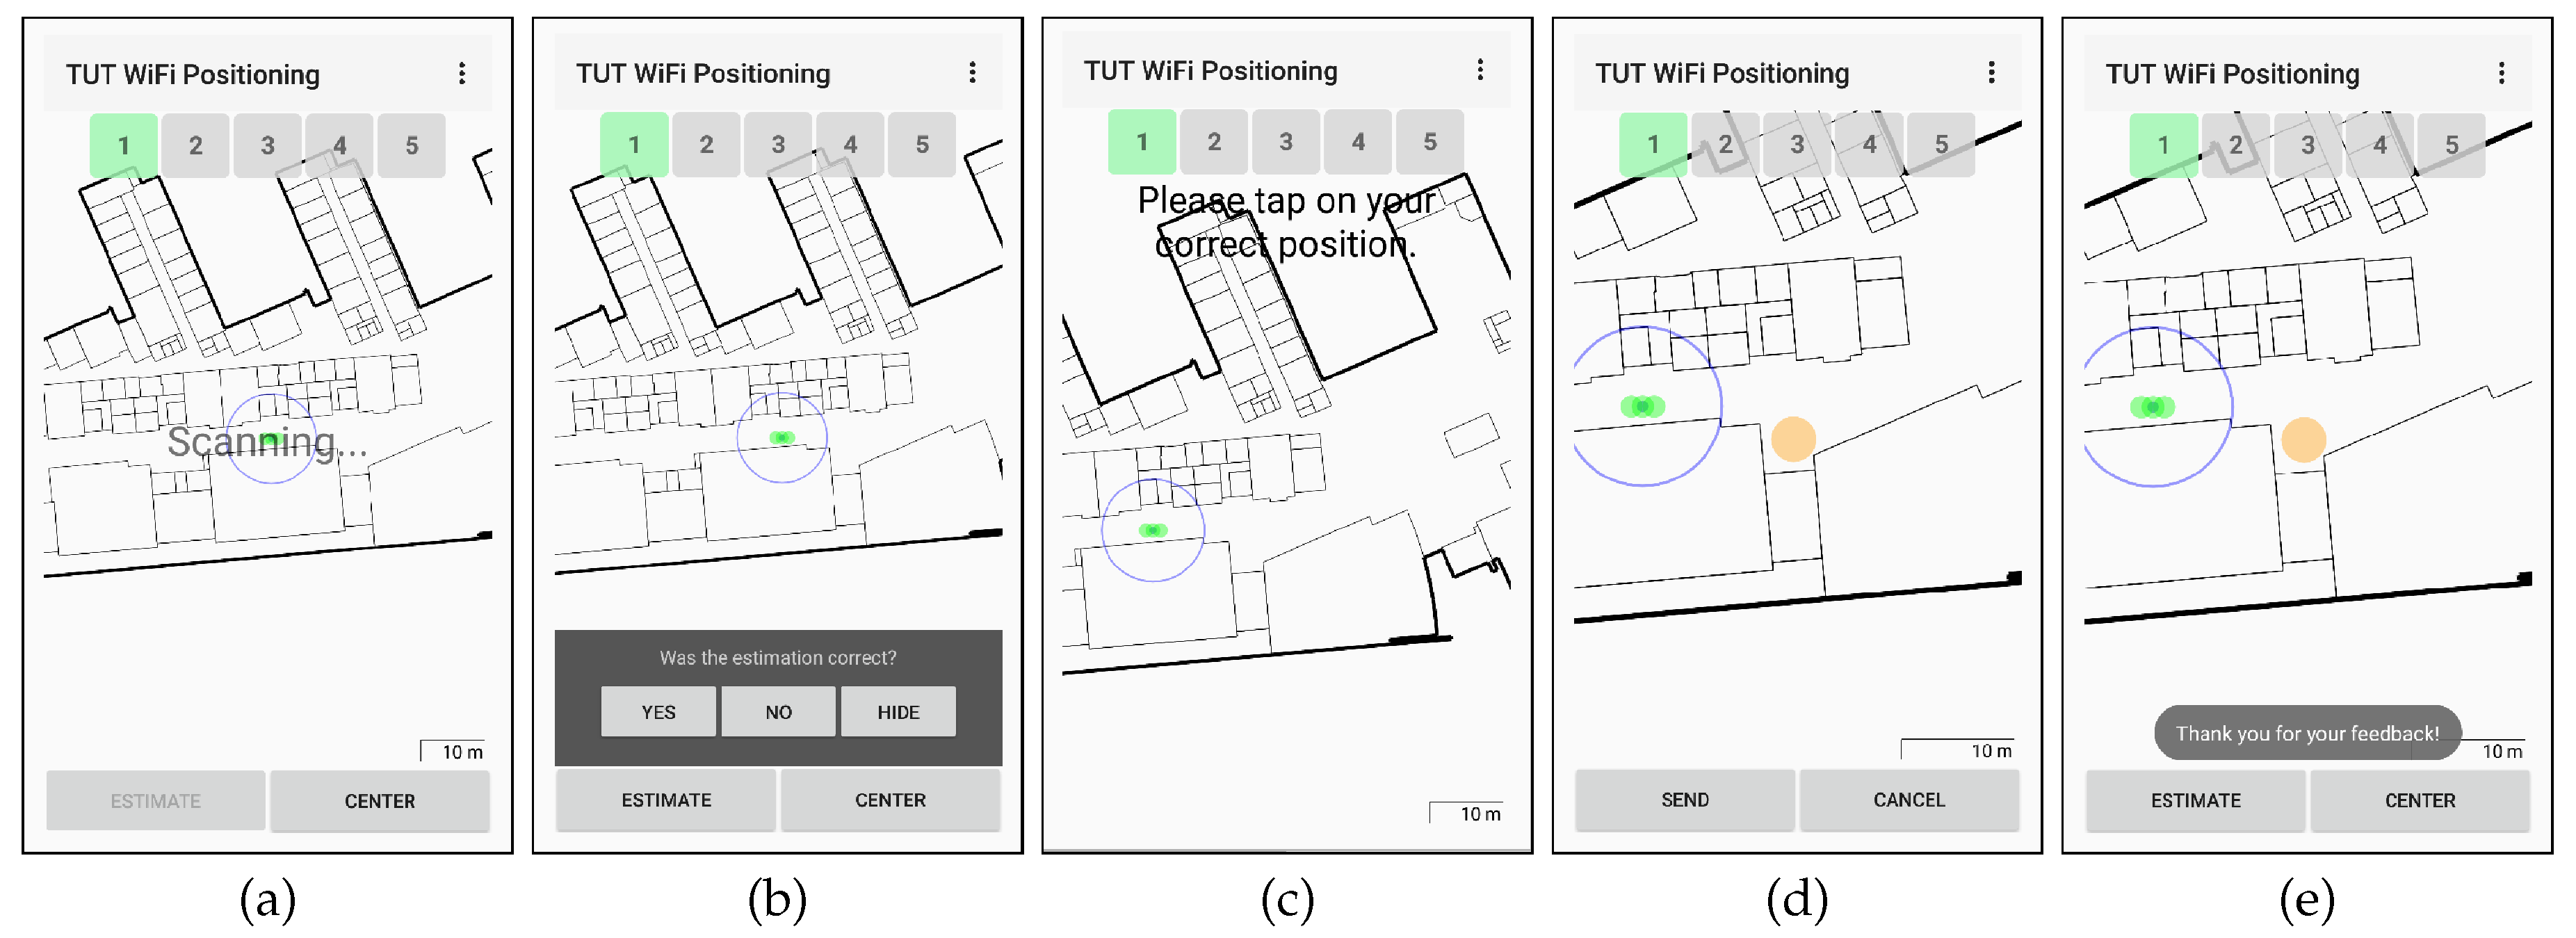 how to make indoor positioning system